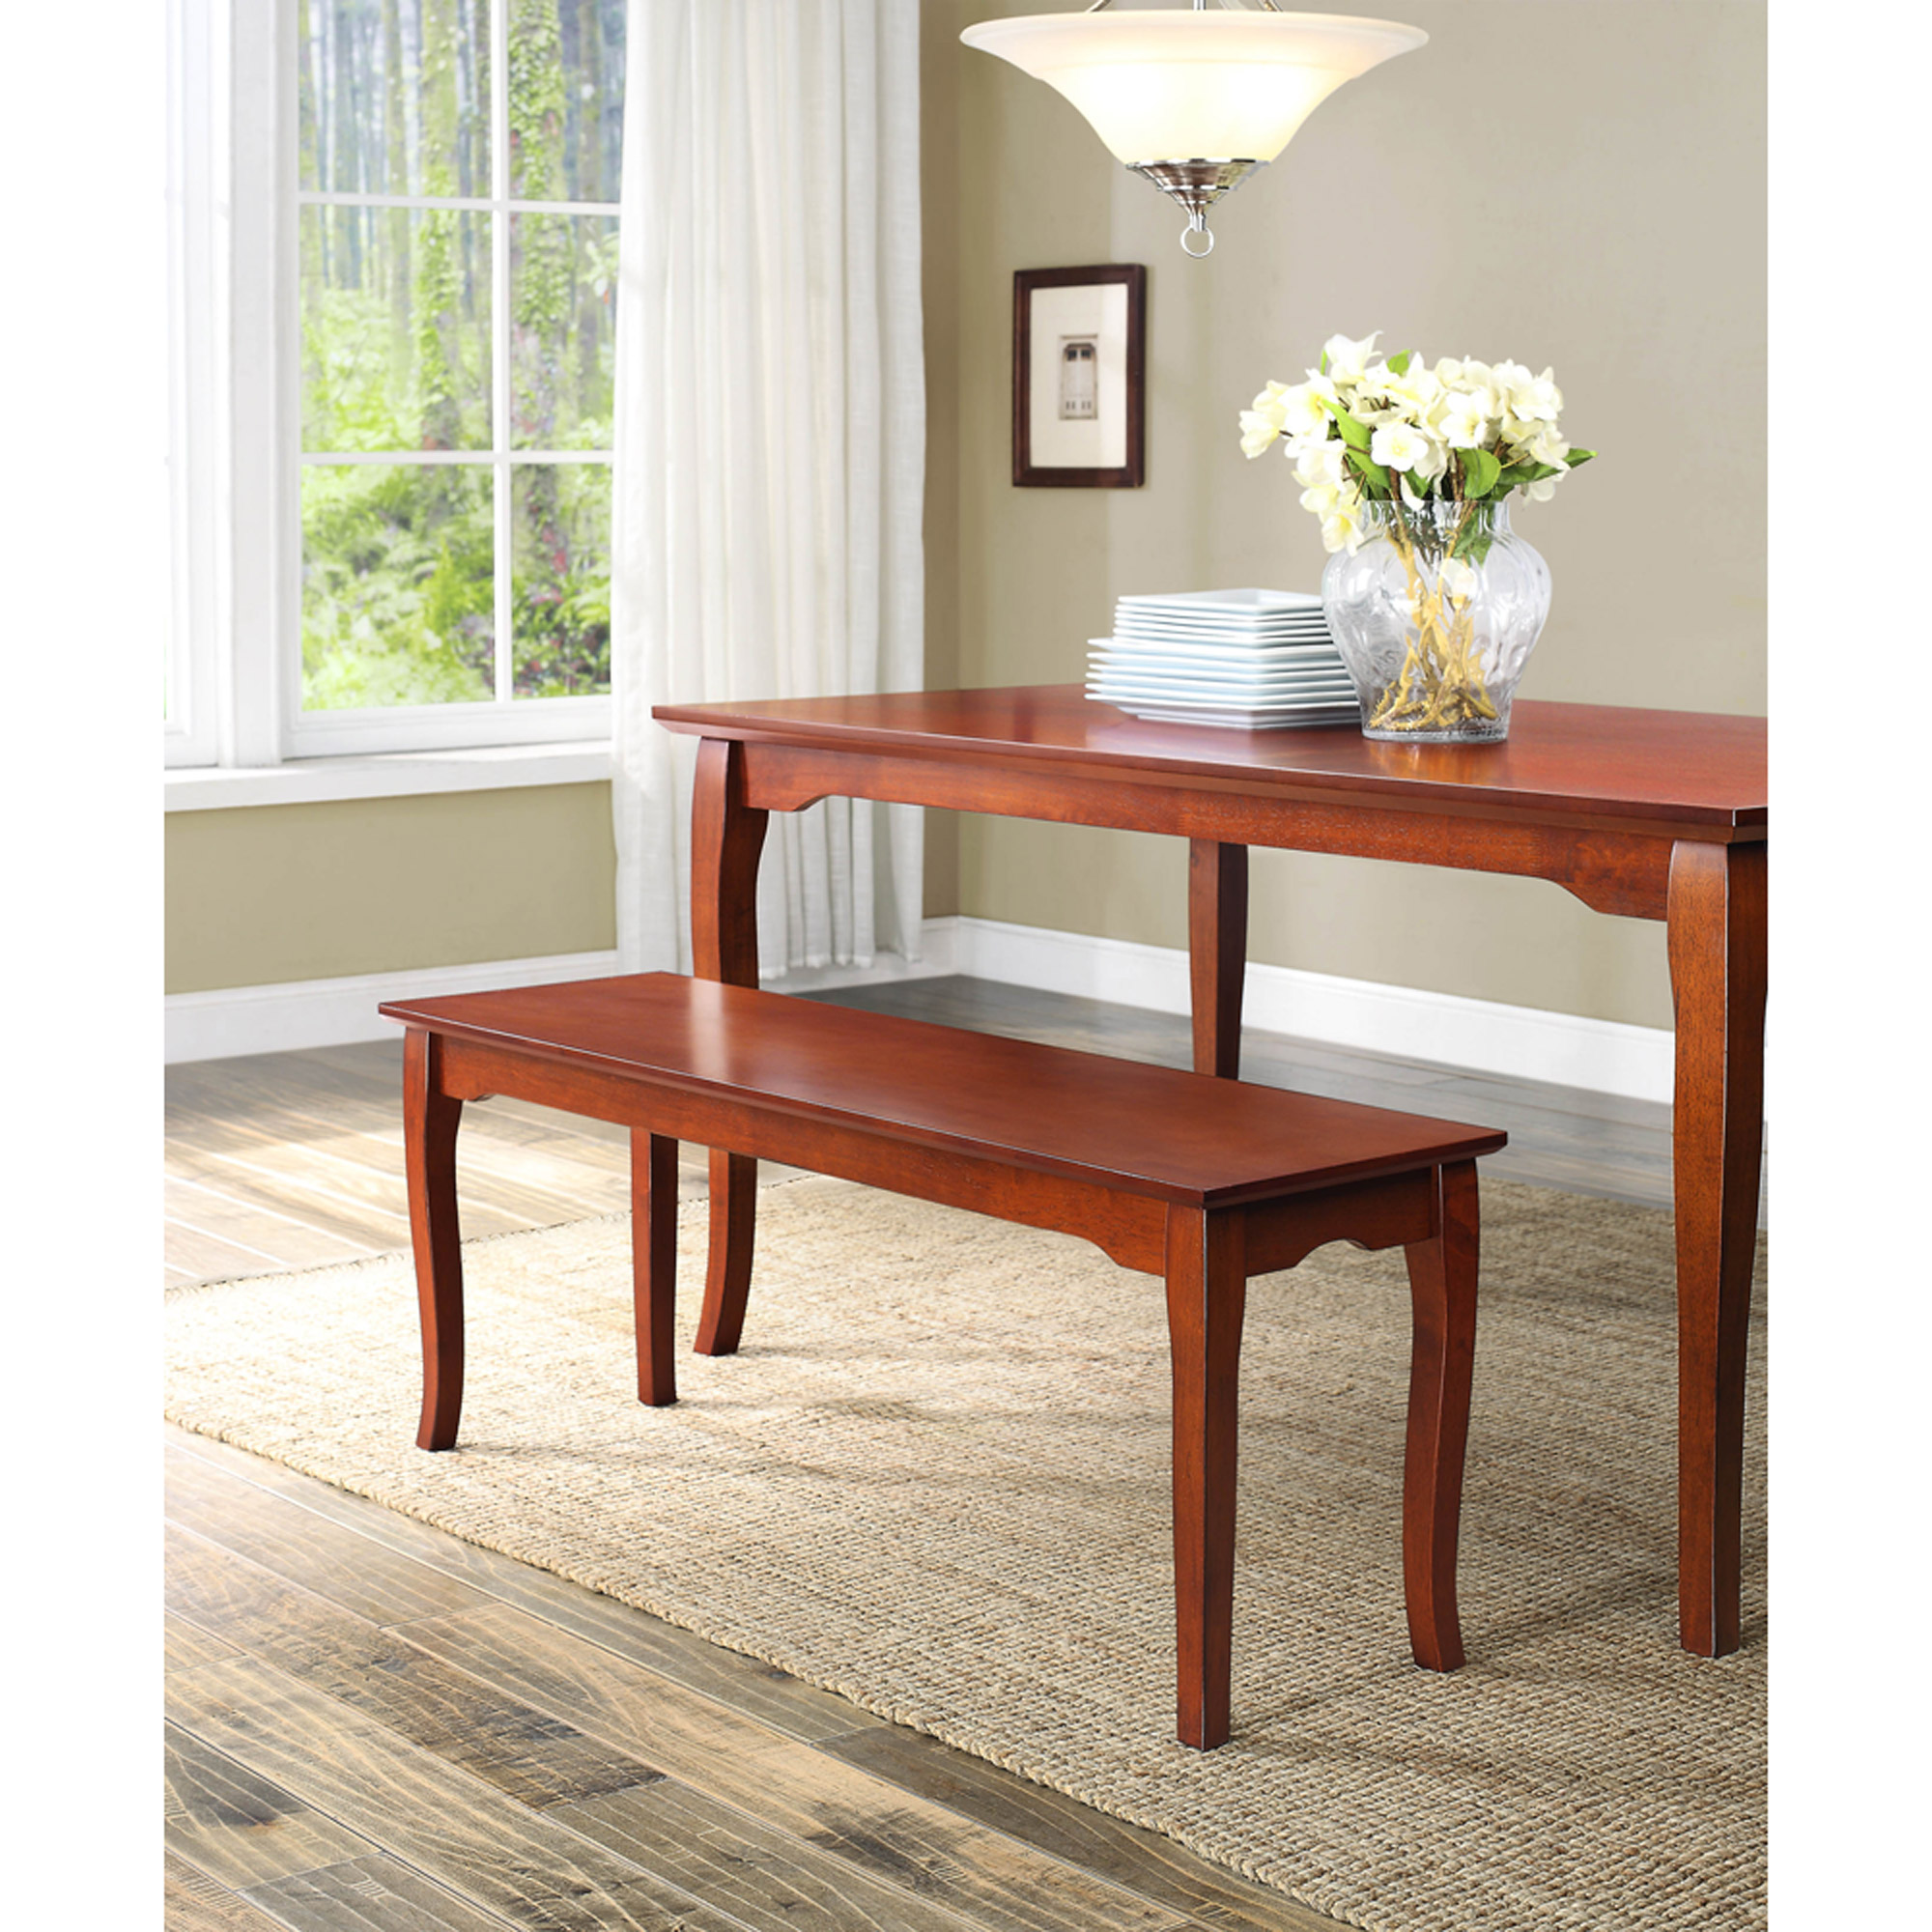 Better Homes And Gardens Ashwood Road Dining Bench, Brown Cherry    Walmart.com